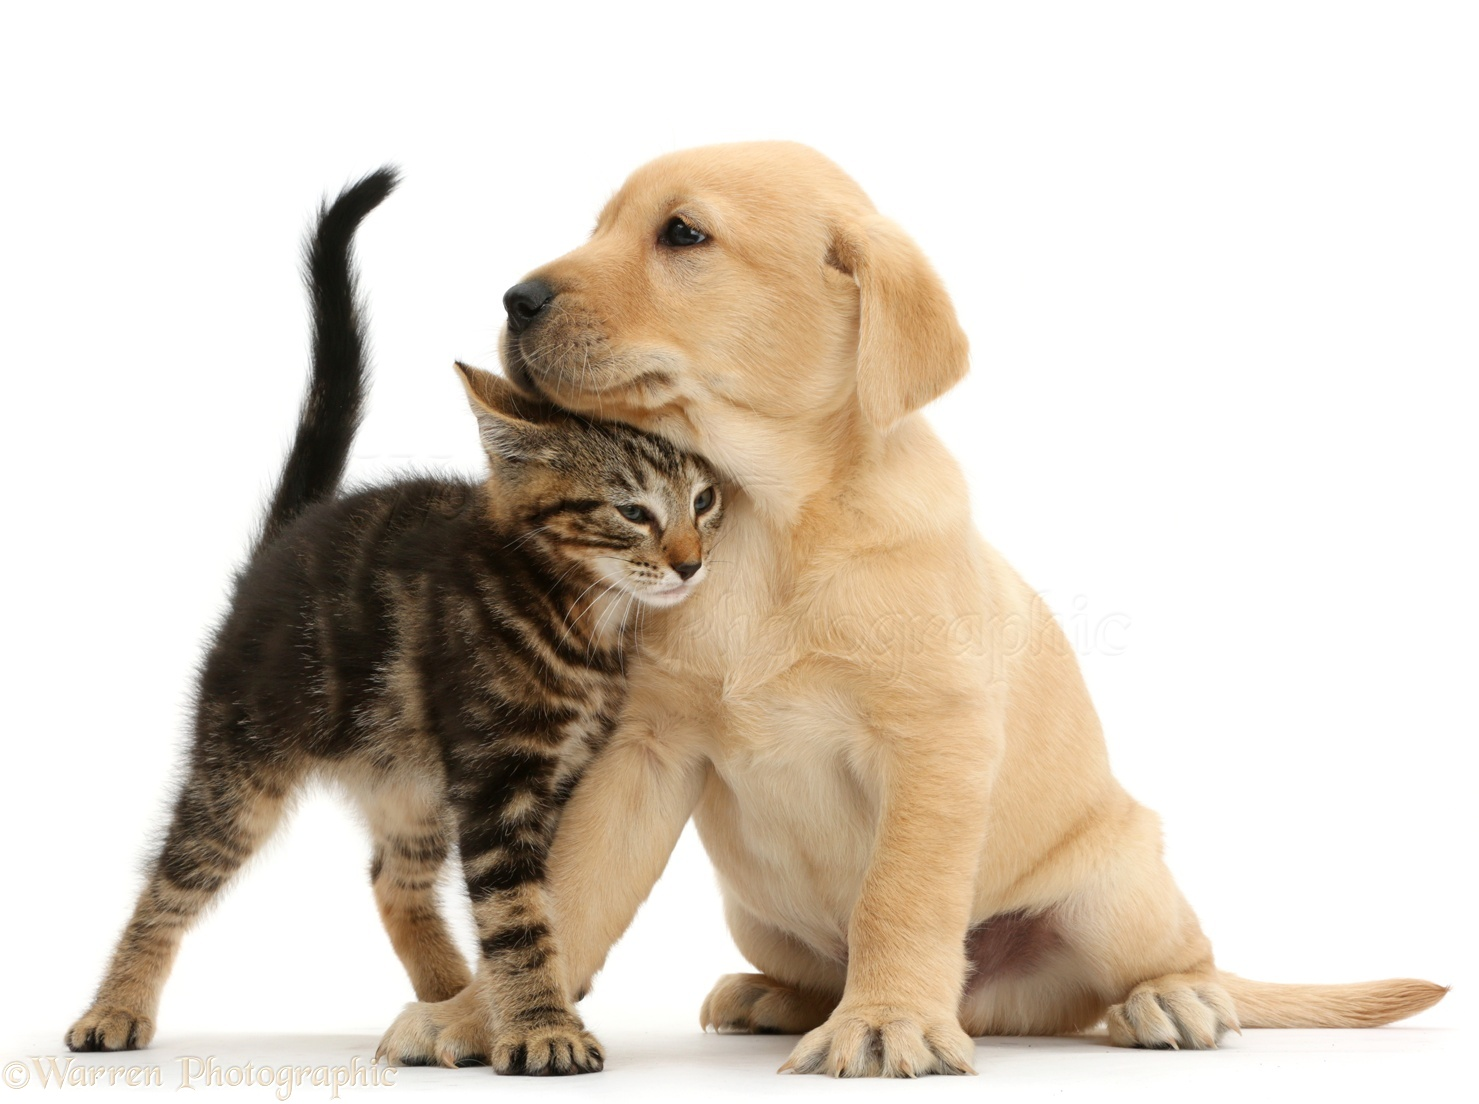 ... in a friendly manner against cute Yellow Labrador puppy, 8 weeks old